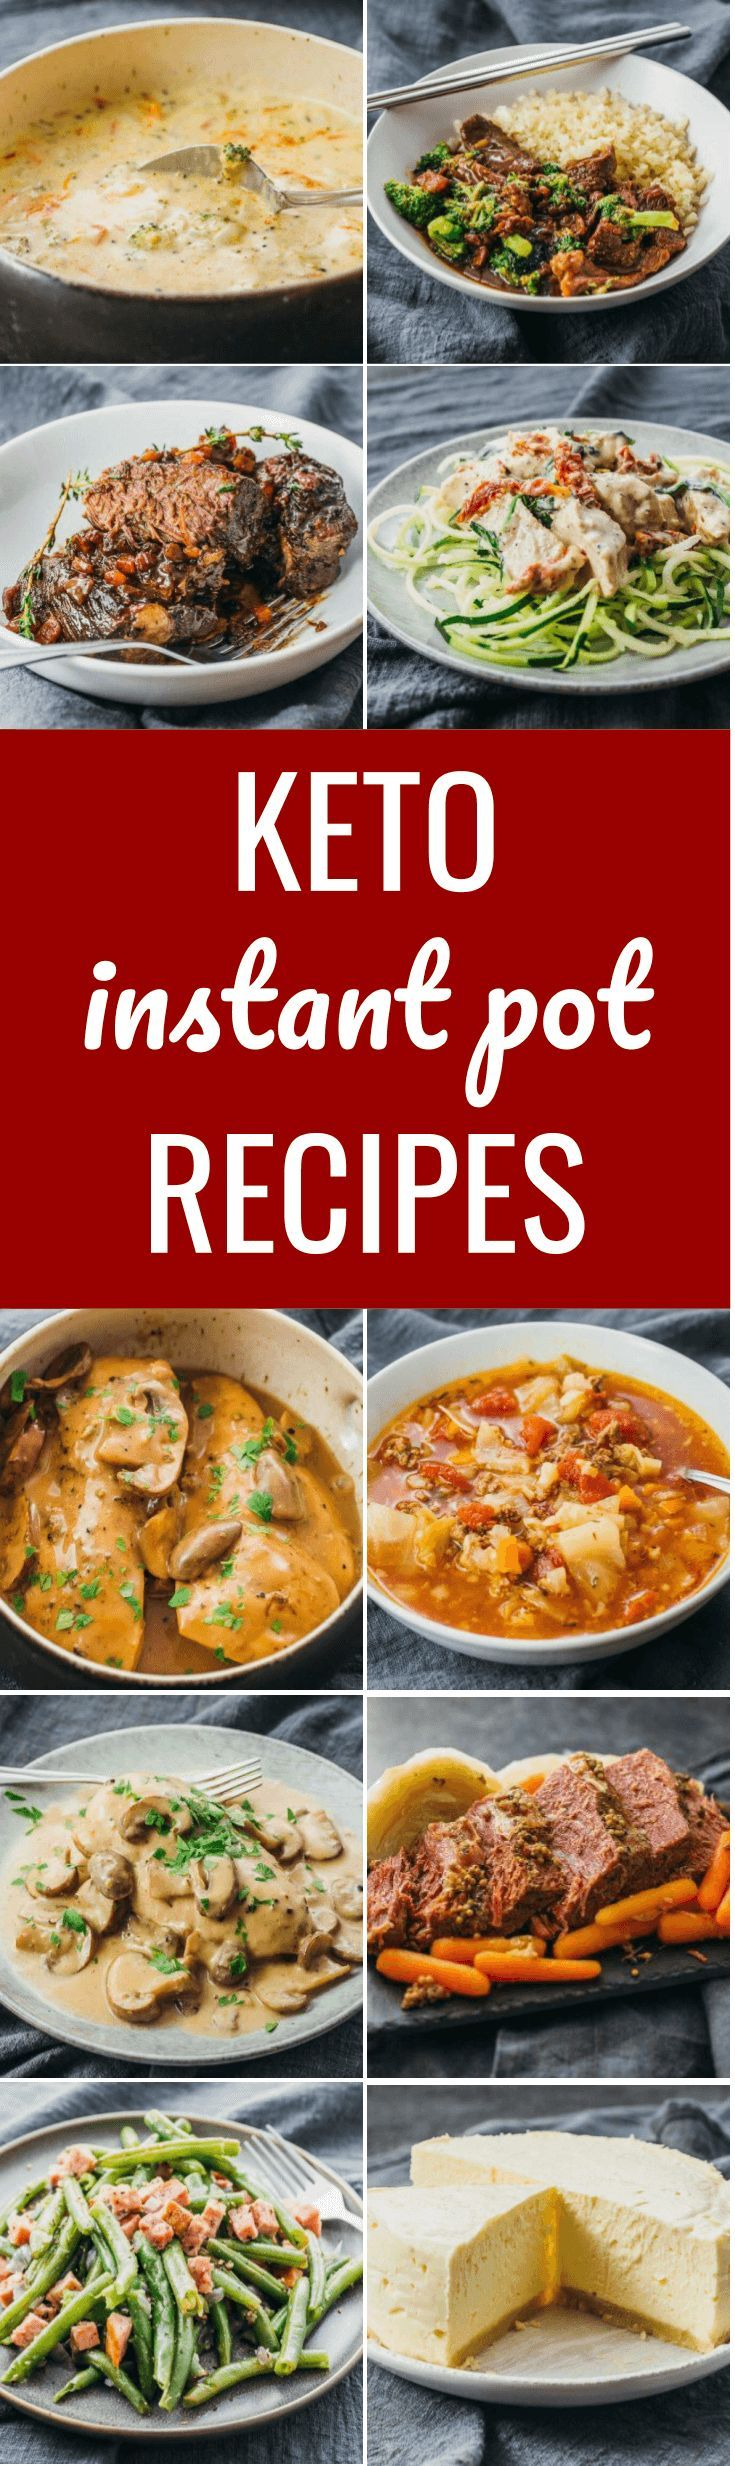 Collection Of Keto Amp Low Carb Instant Pot Recipes Lowcarb Keto Instantpot Chicken Soup